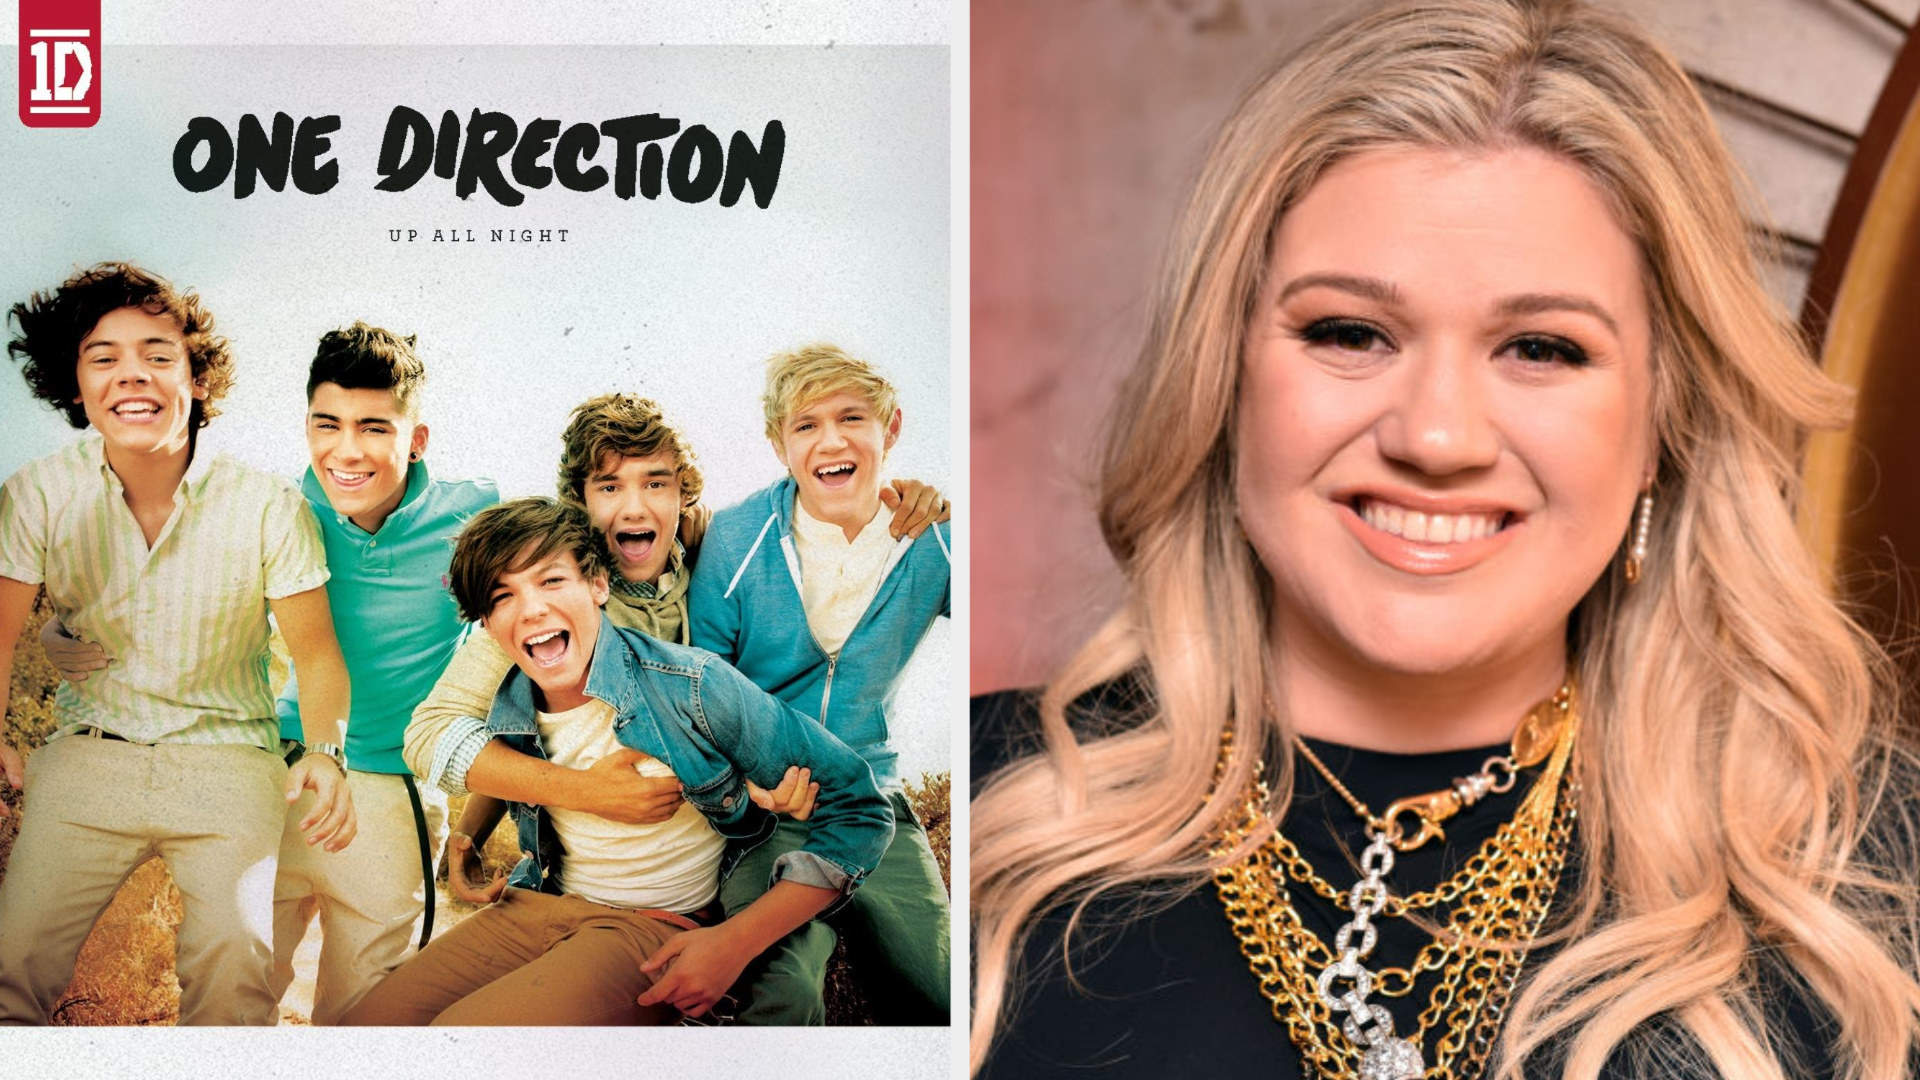 """The cover of One Direction's debut album, """"Up All Night;"""" Kelly Clarkson at a press event in the late 2010s"""